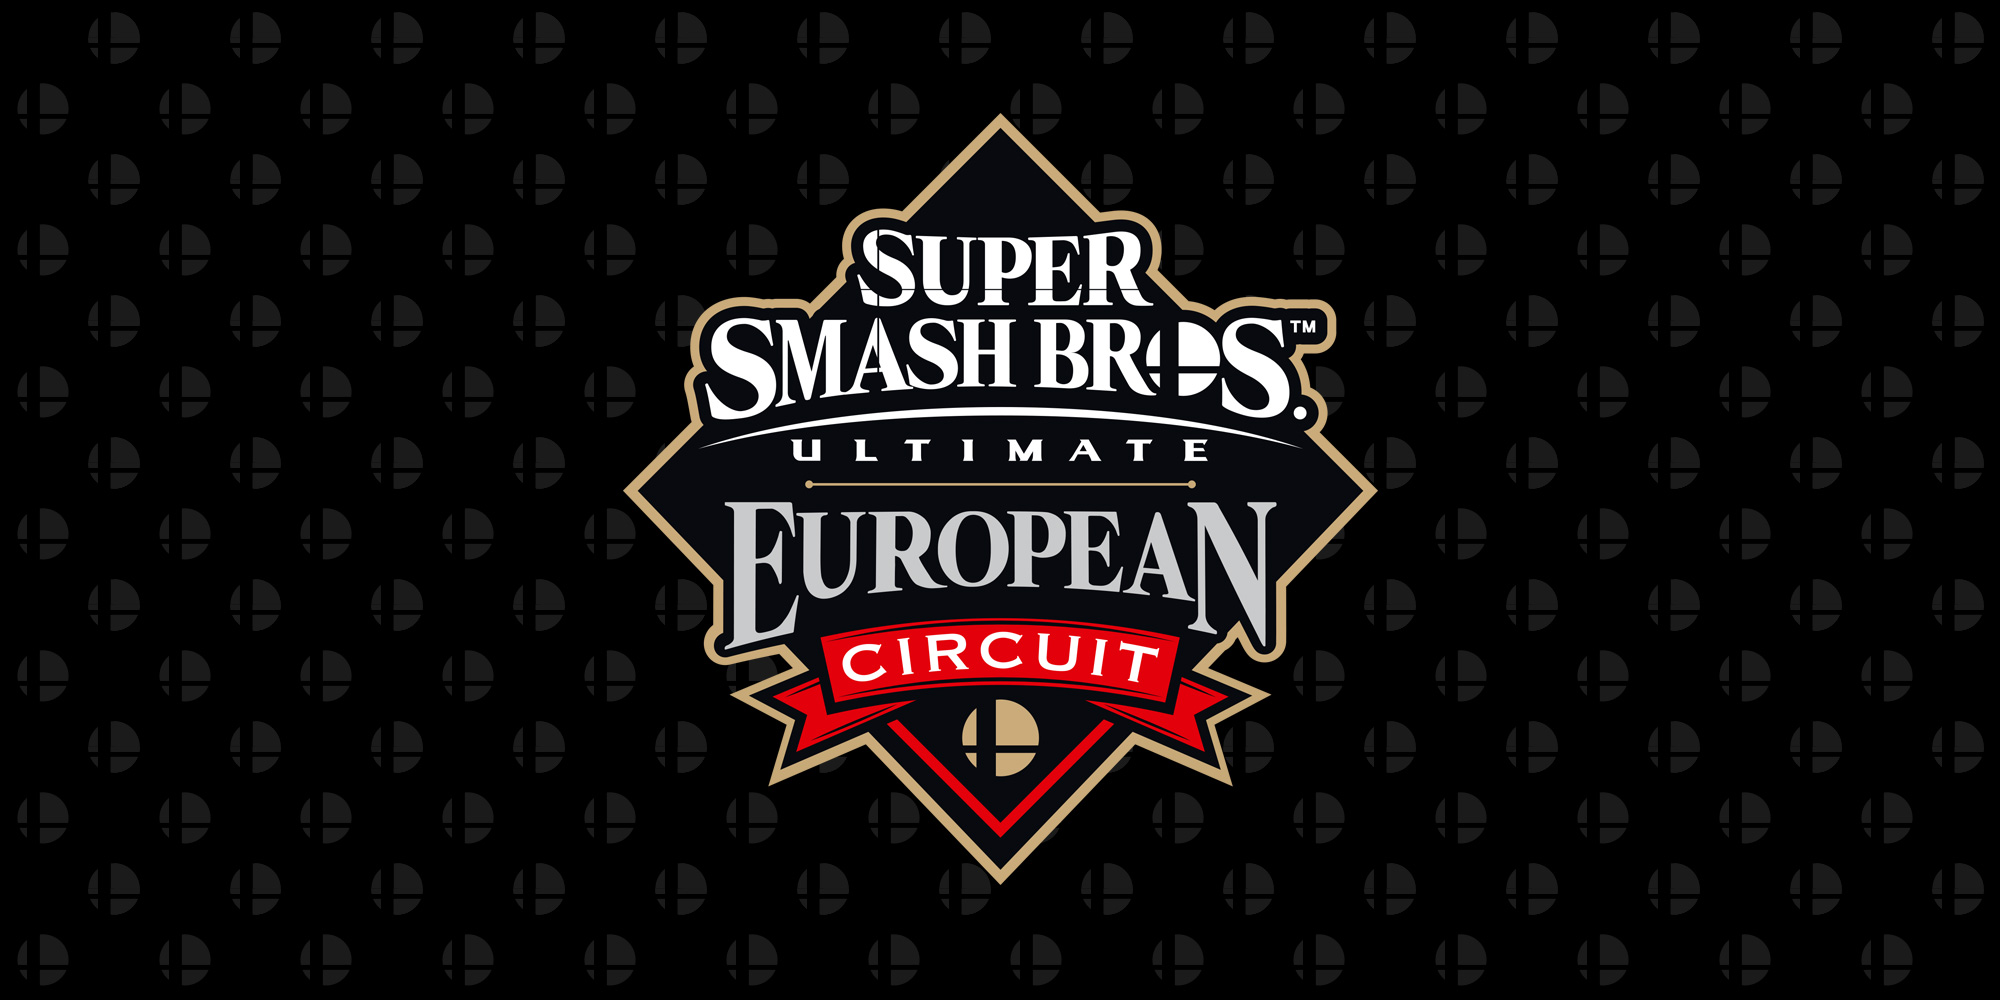 O DarkThunder foi o grande vencedor do quarto torneio do Super Smash Bros. Ultimate European Circuit!